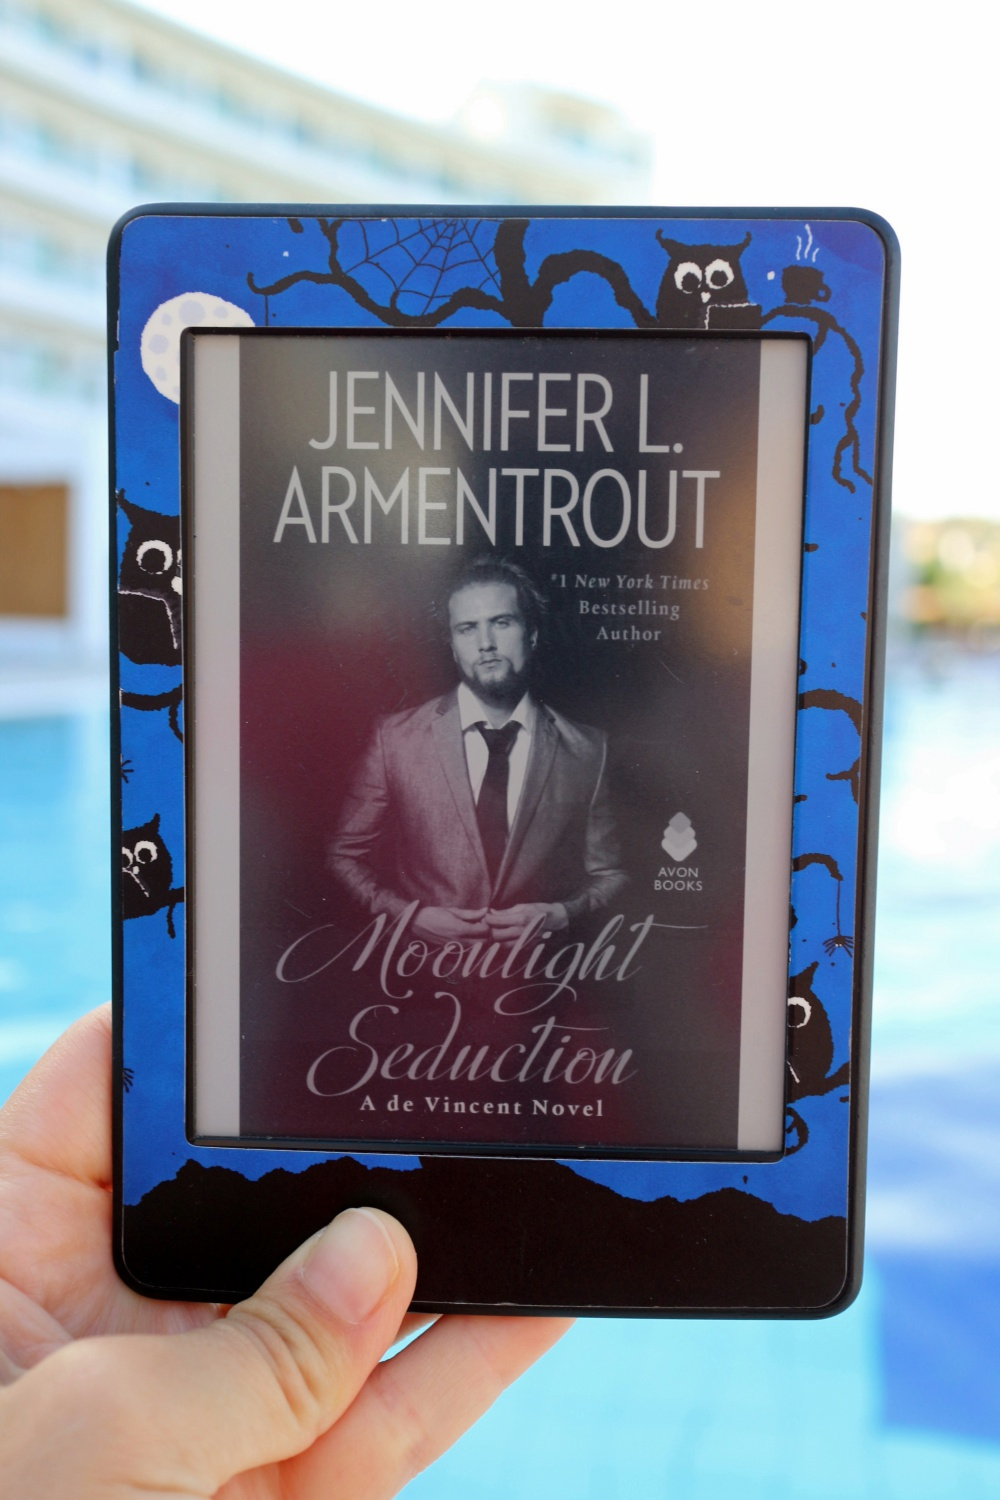 Moonlight Seduction_A de Vincent Novel_Jennifer L. Armentrout